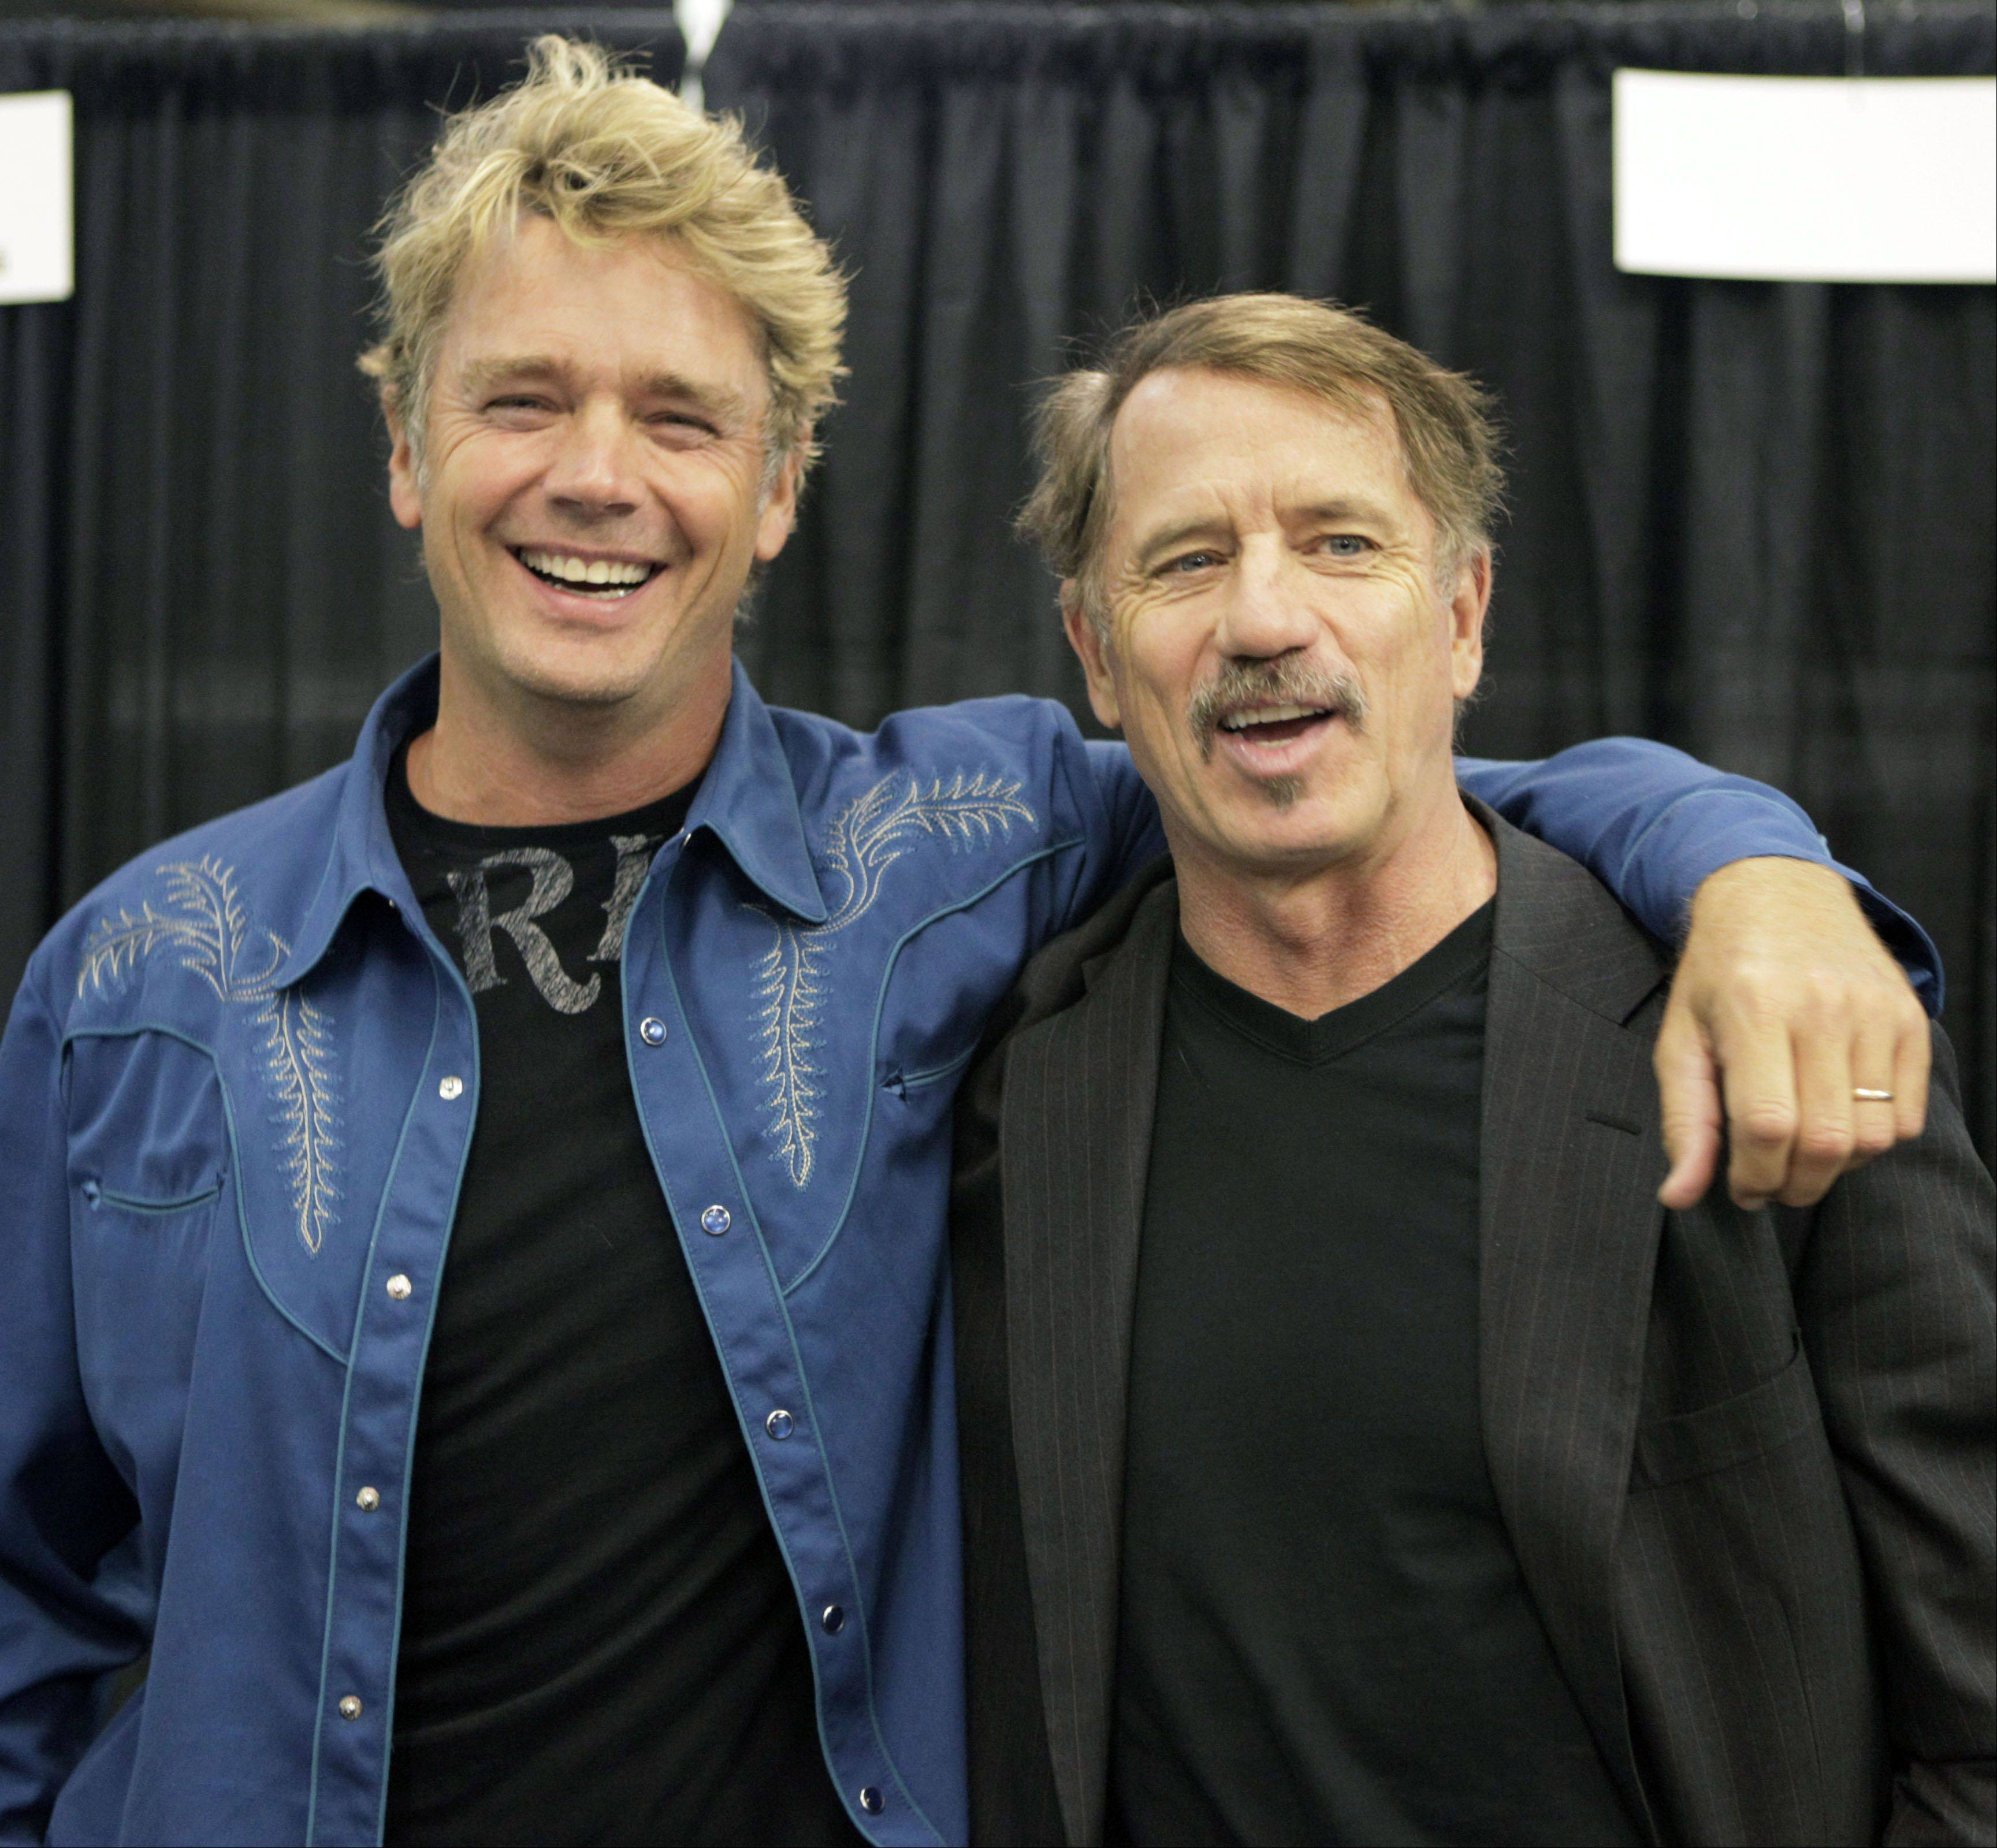 Actors John Schneider, left, and Tom Wopat from television's Dukes of Hazard.